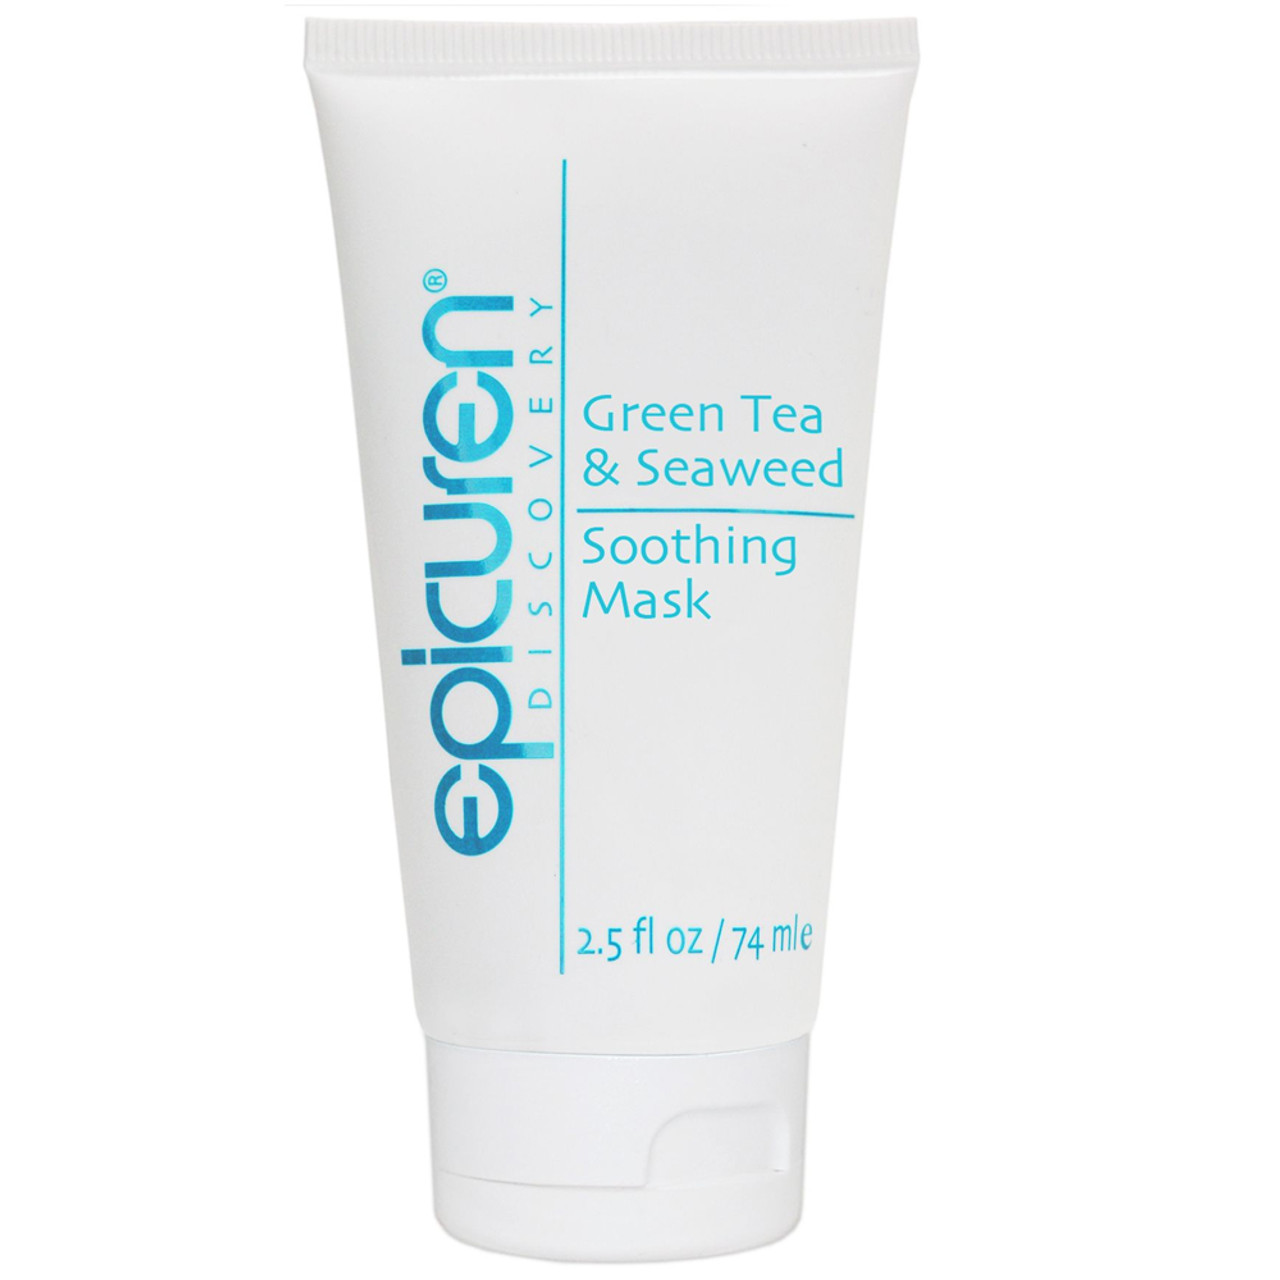 epicuren Discovery Green Tea & Seaweed Soothing Mask